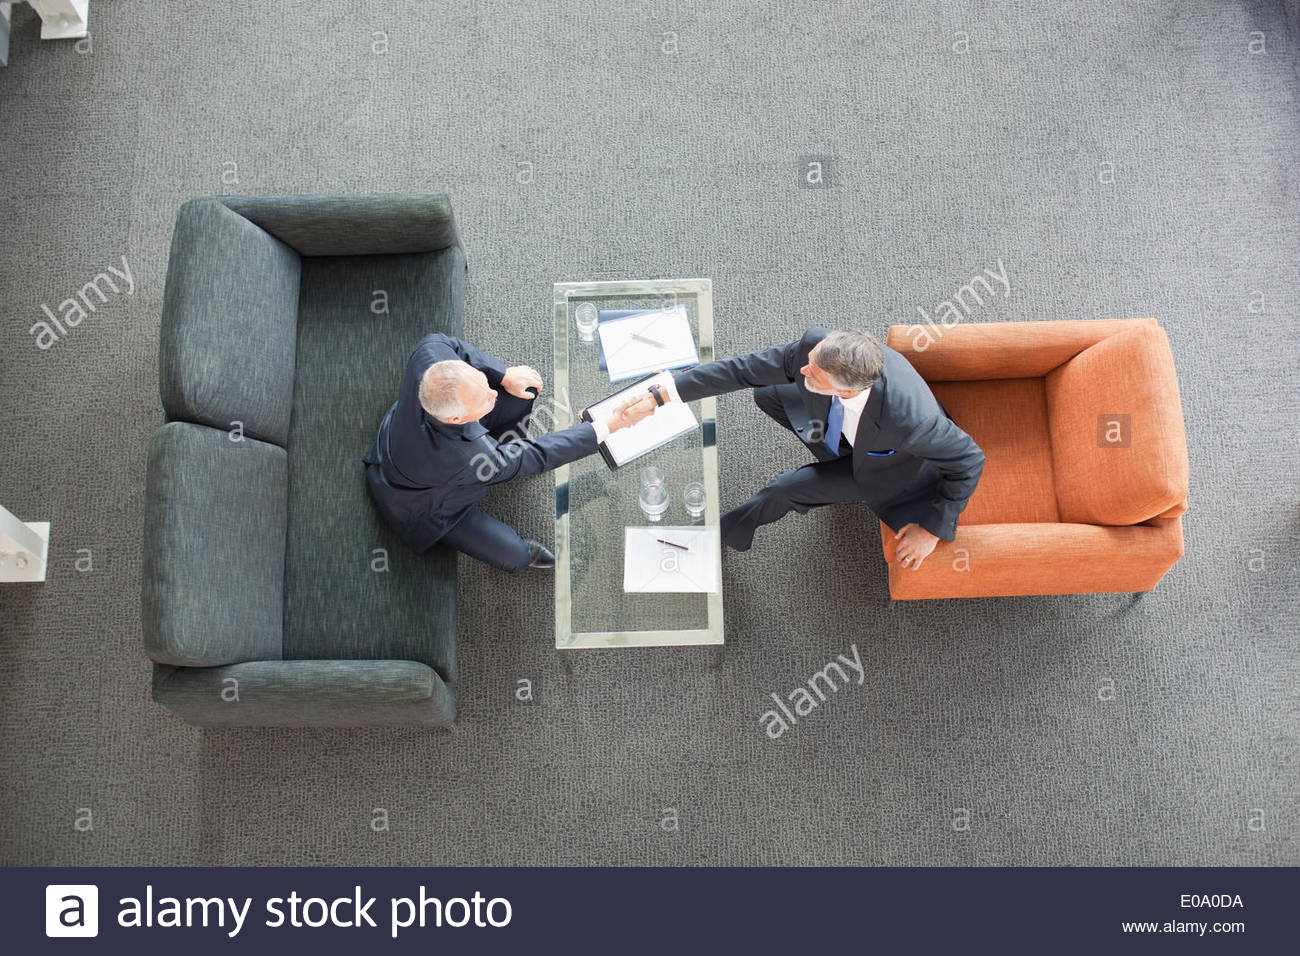 Businessmen shaking hands across coffee table in lobby - Stock Image